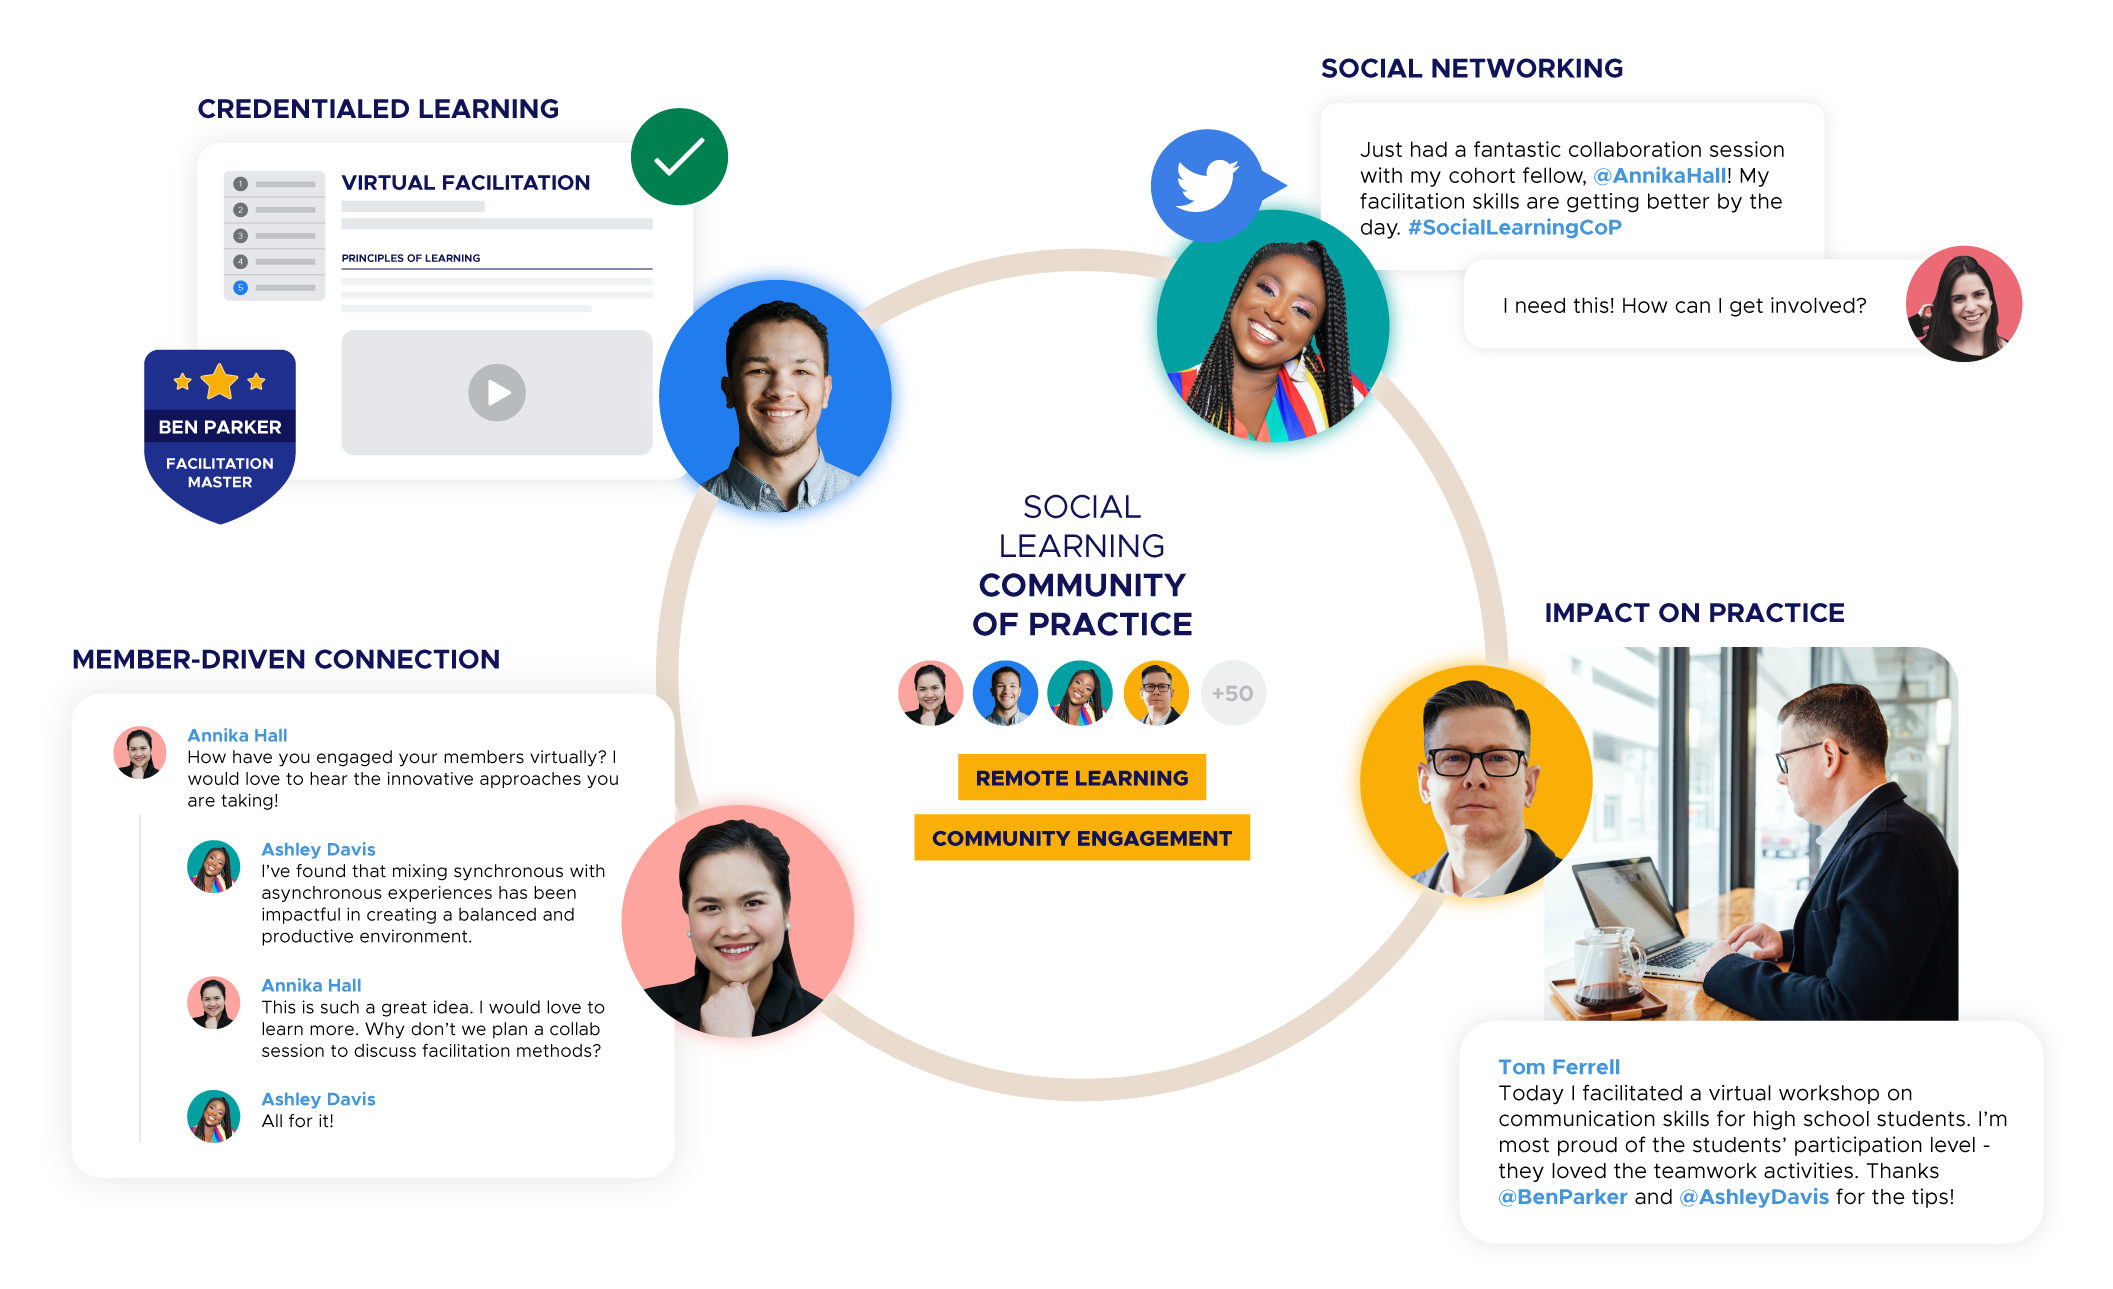 Illustration of a social learning community of practice with credentialed learning, social networking, member-driven connection and impact on practice